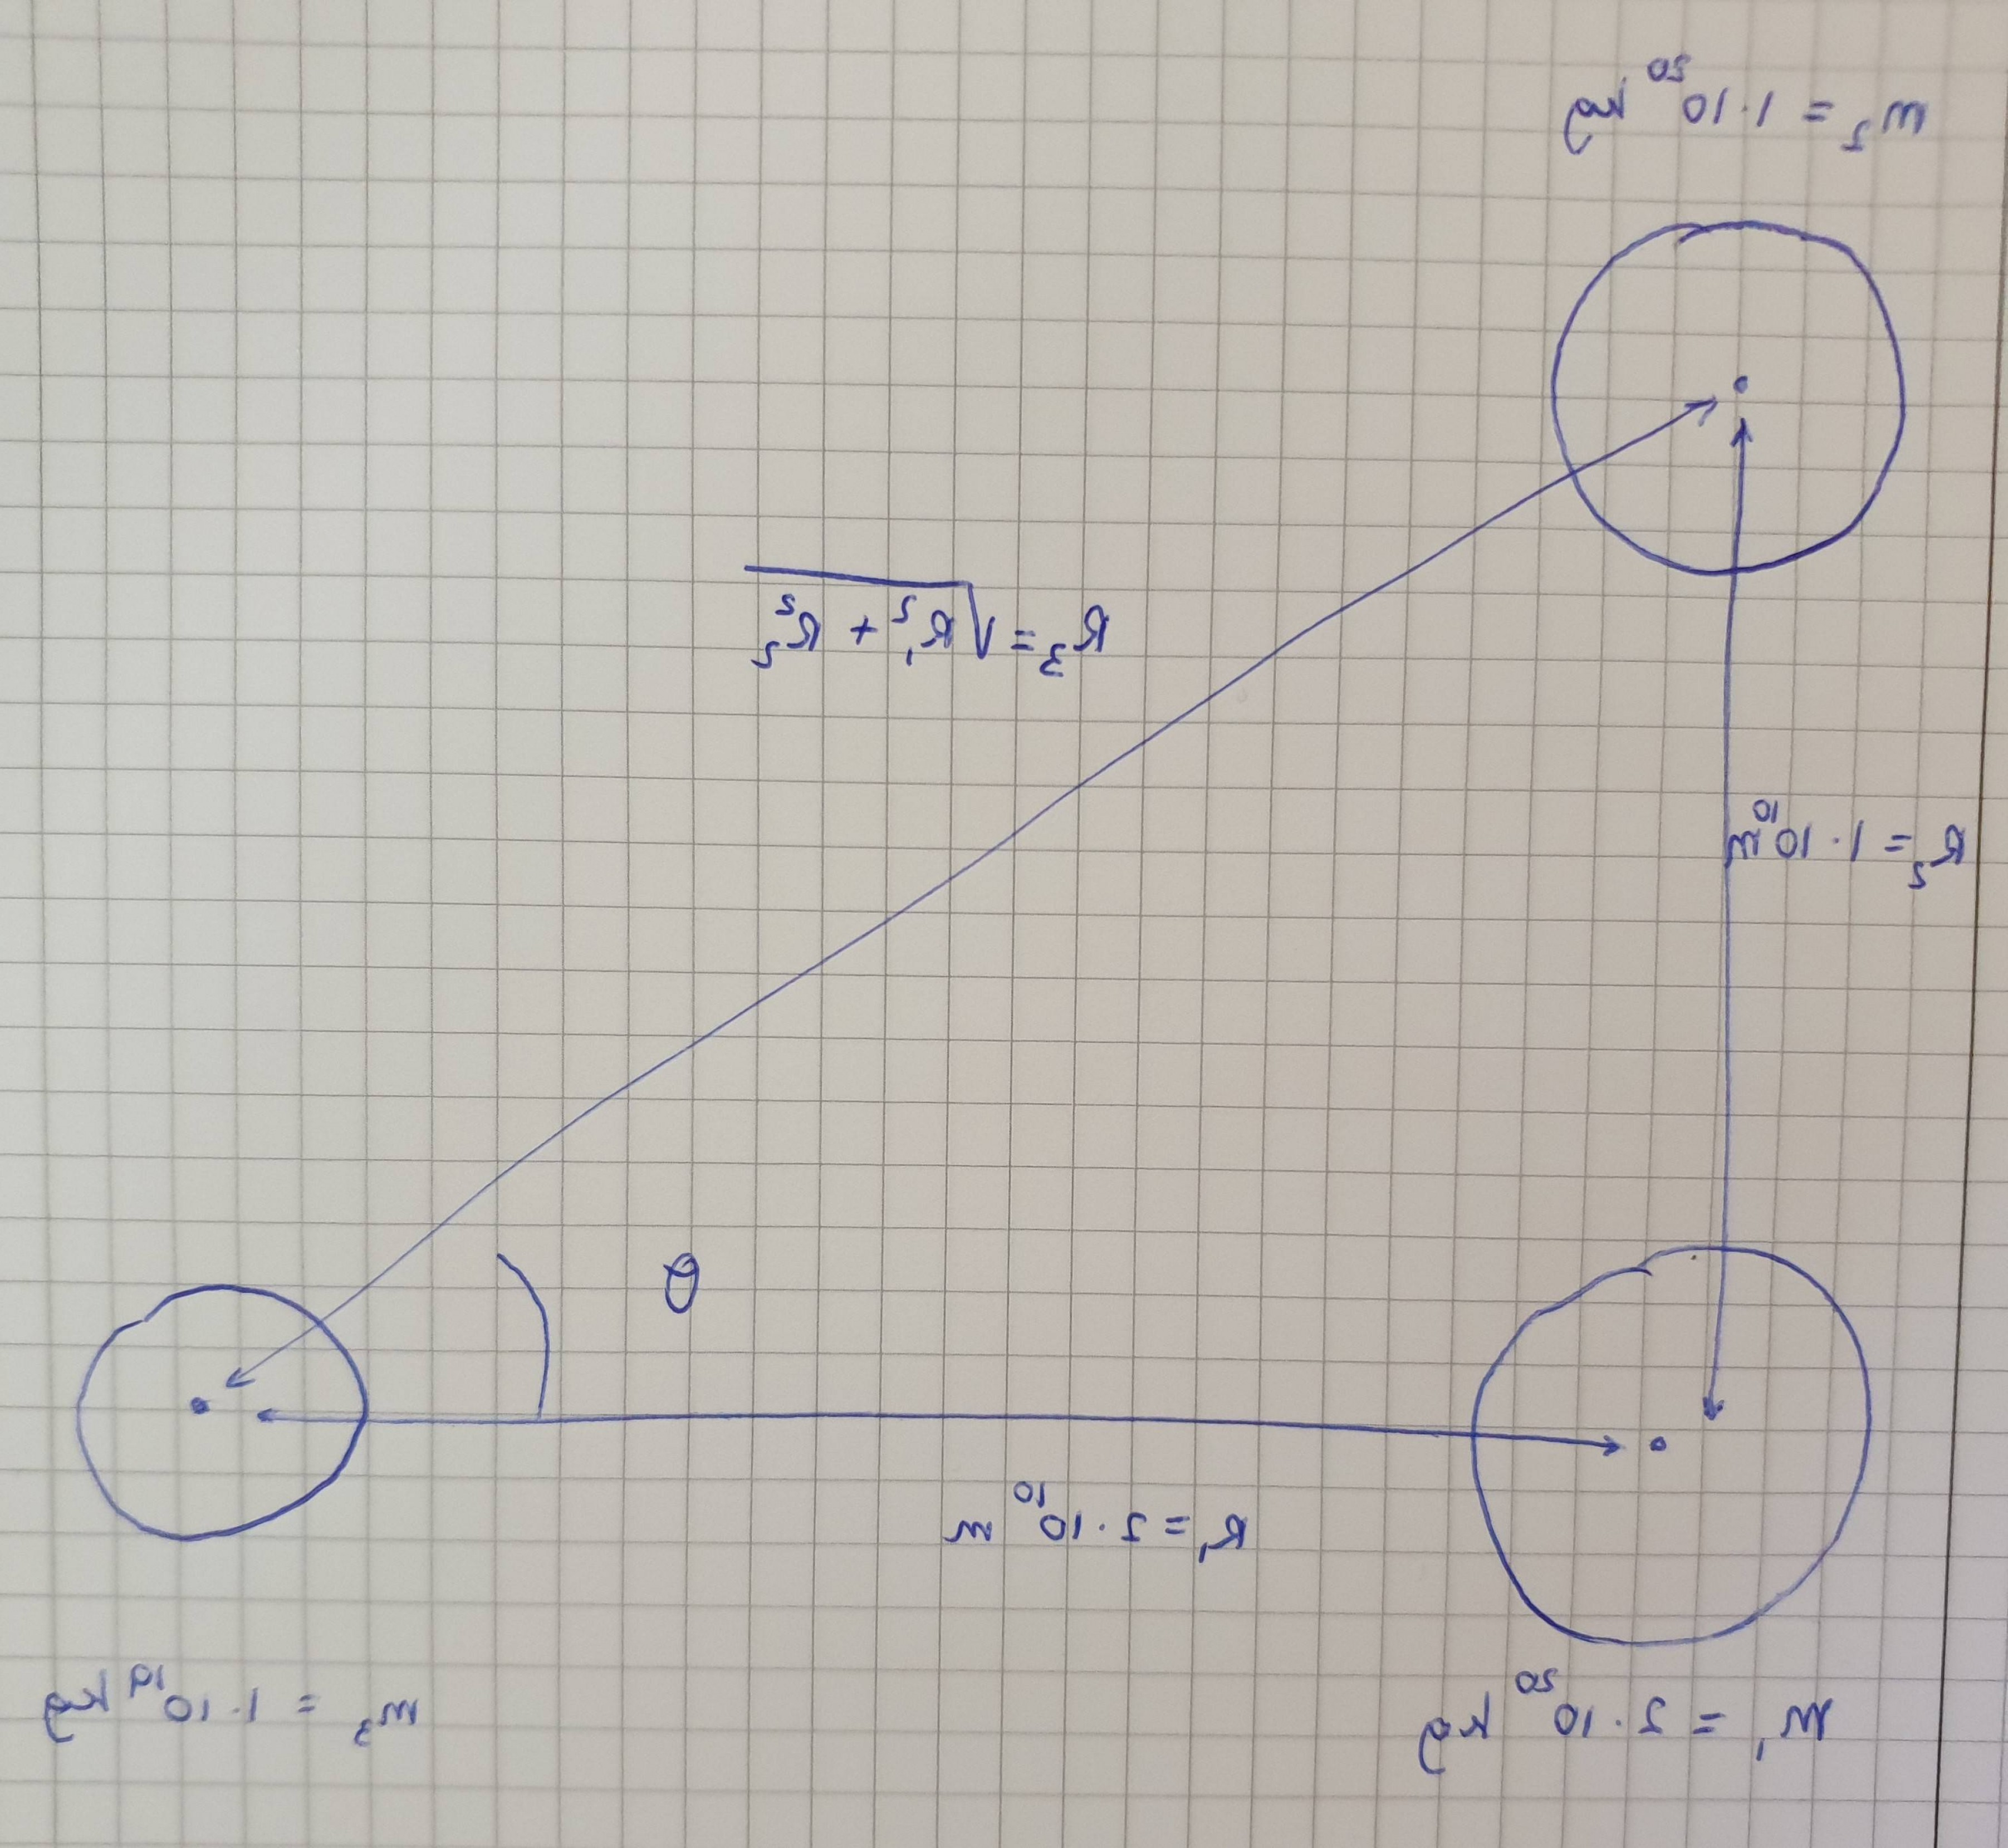 Gravitational Force Vectors: Calculating Gravitational Force With Multiple Planets